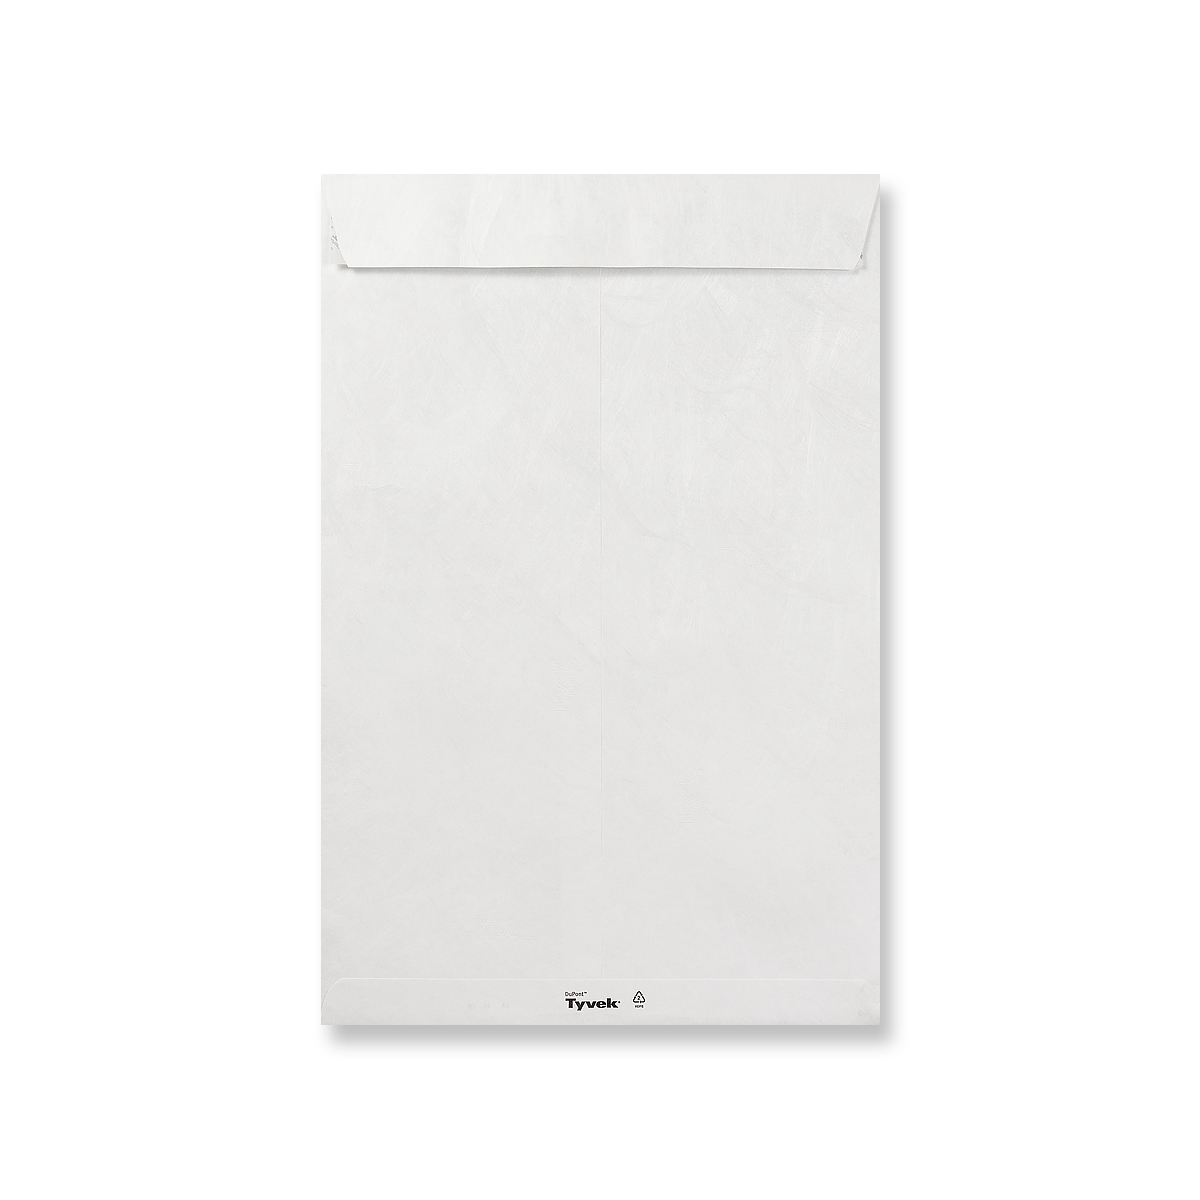 381 x 254mm WHITE TYVEK ENVELOPES